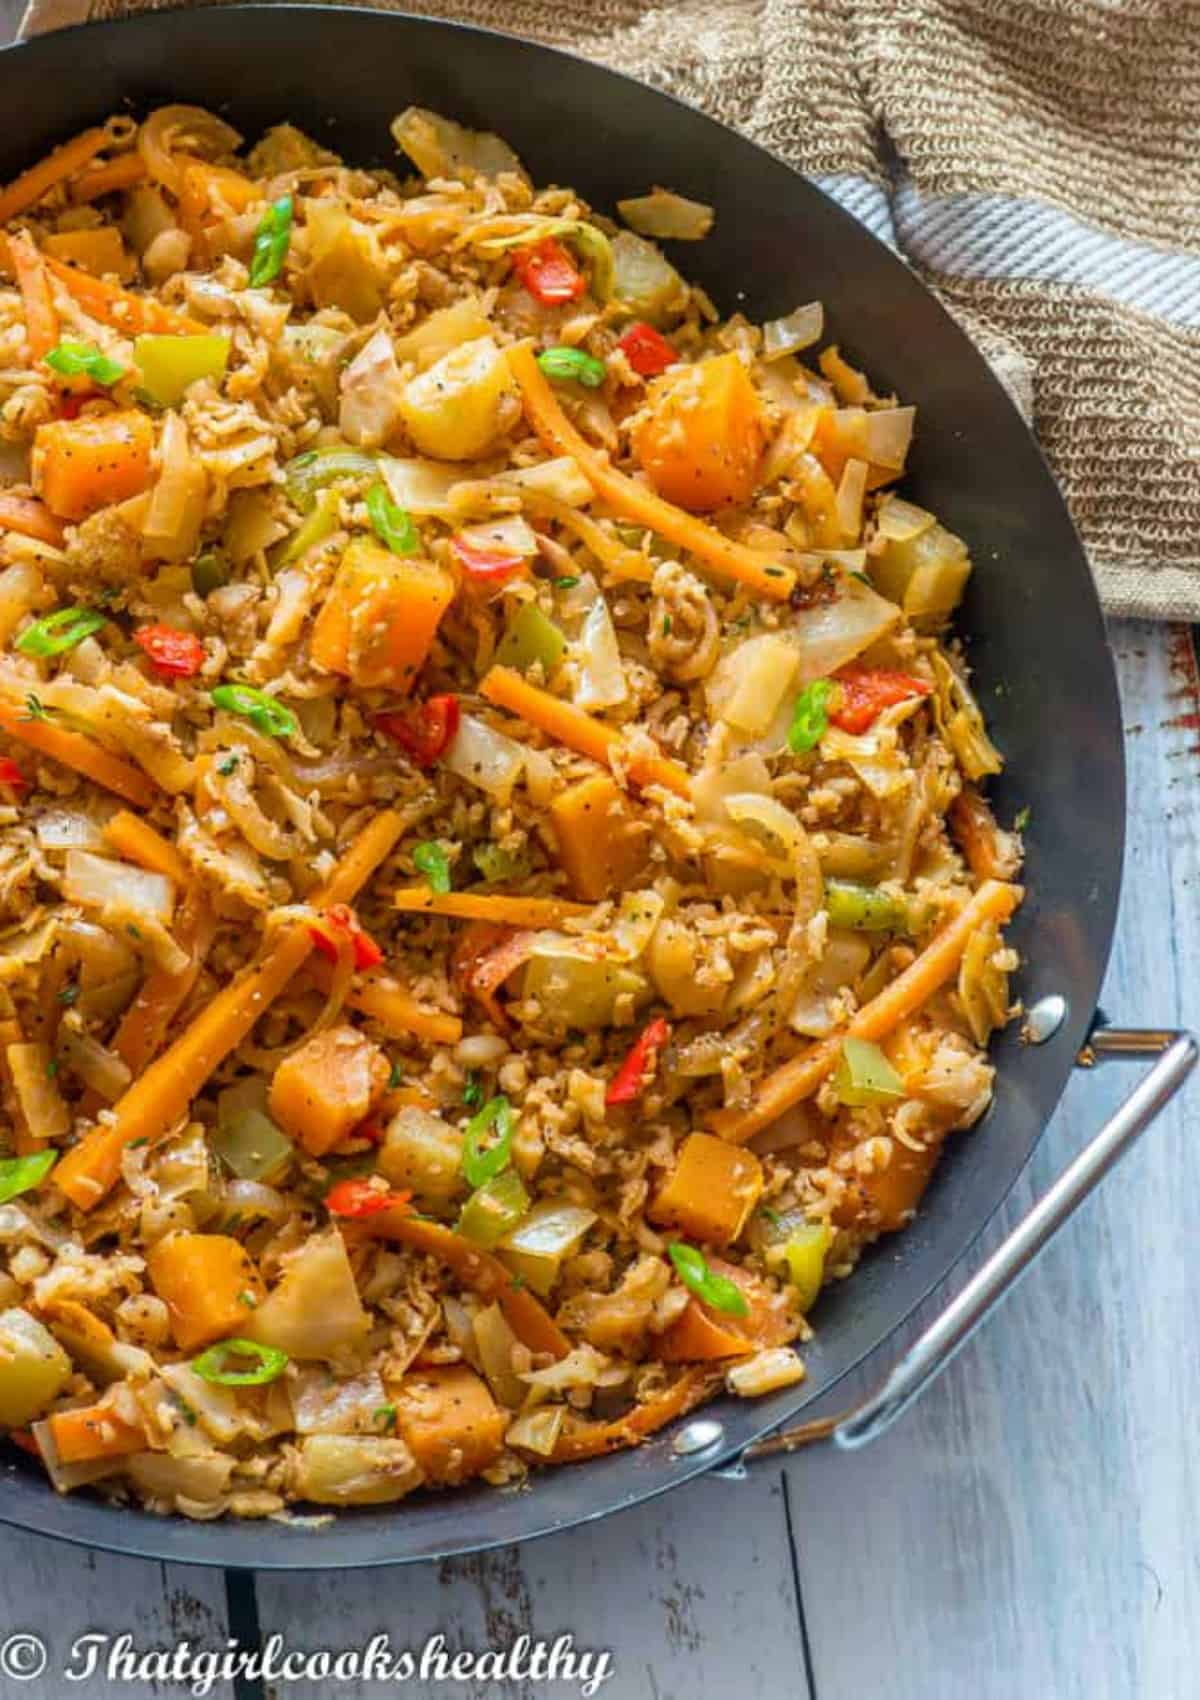 Close up of the pan of fried rice